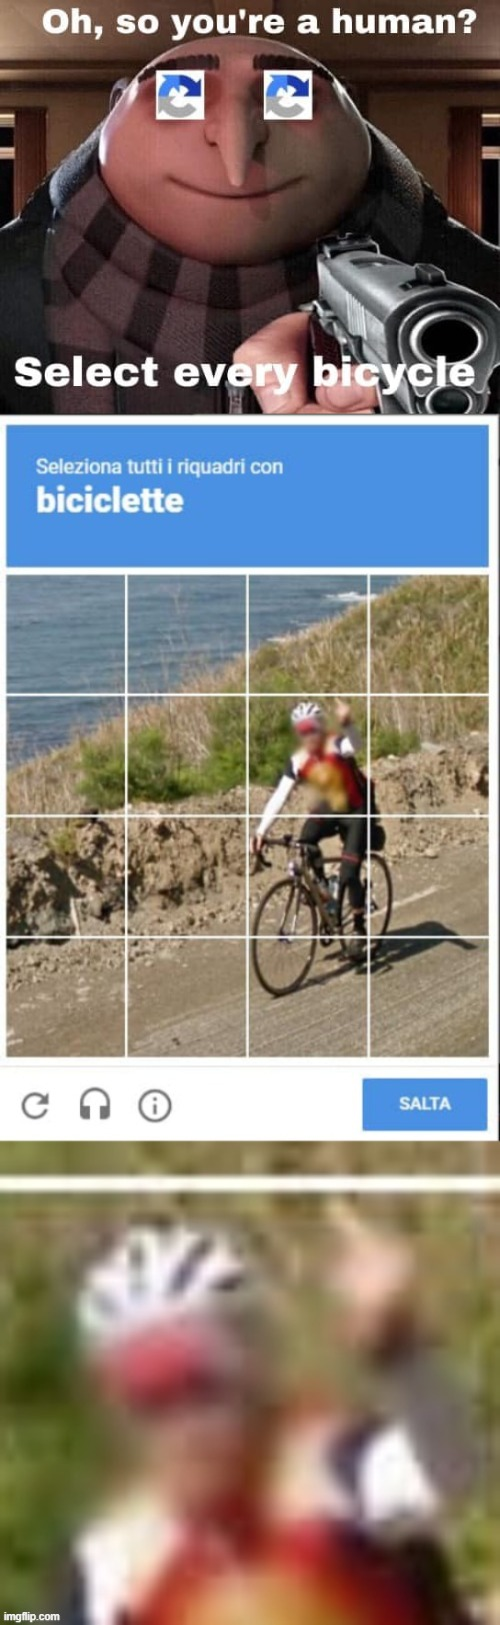 CAPTCHA checkpoint road rage | image tagged in captcha checkpoint,road rage,bicycle,wut,wot,what | made w/ Imgflip meme maker